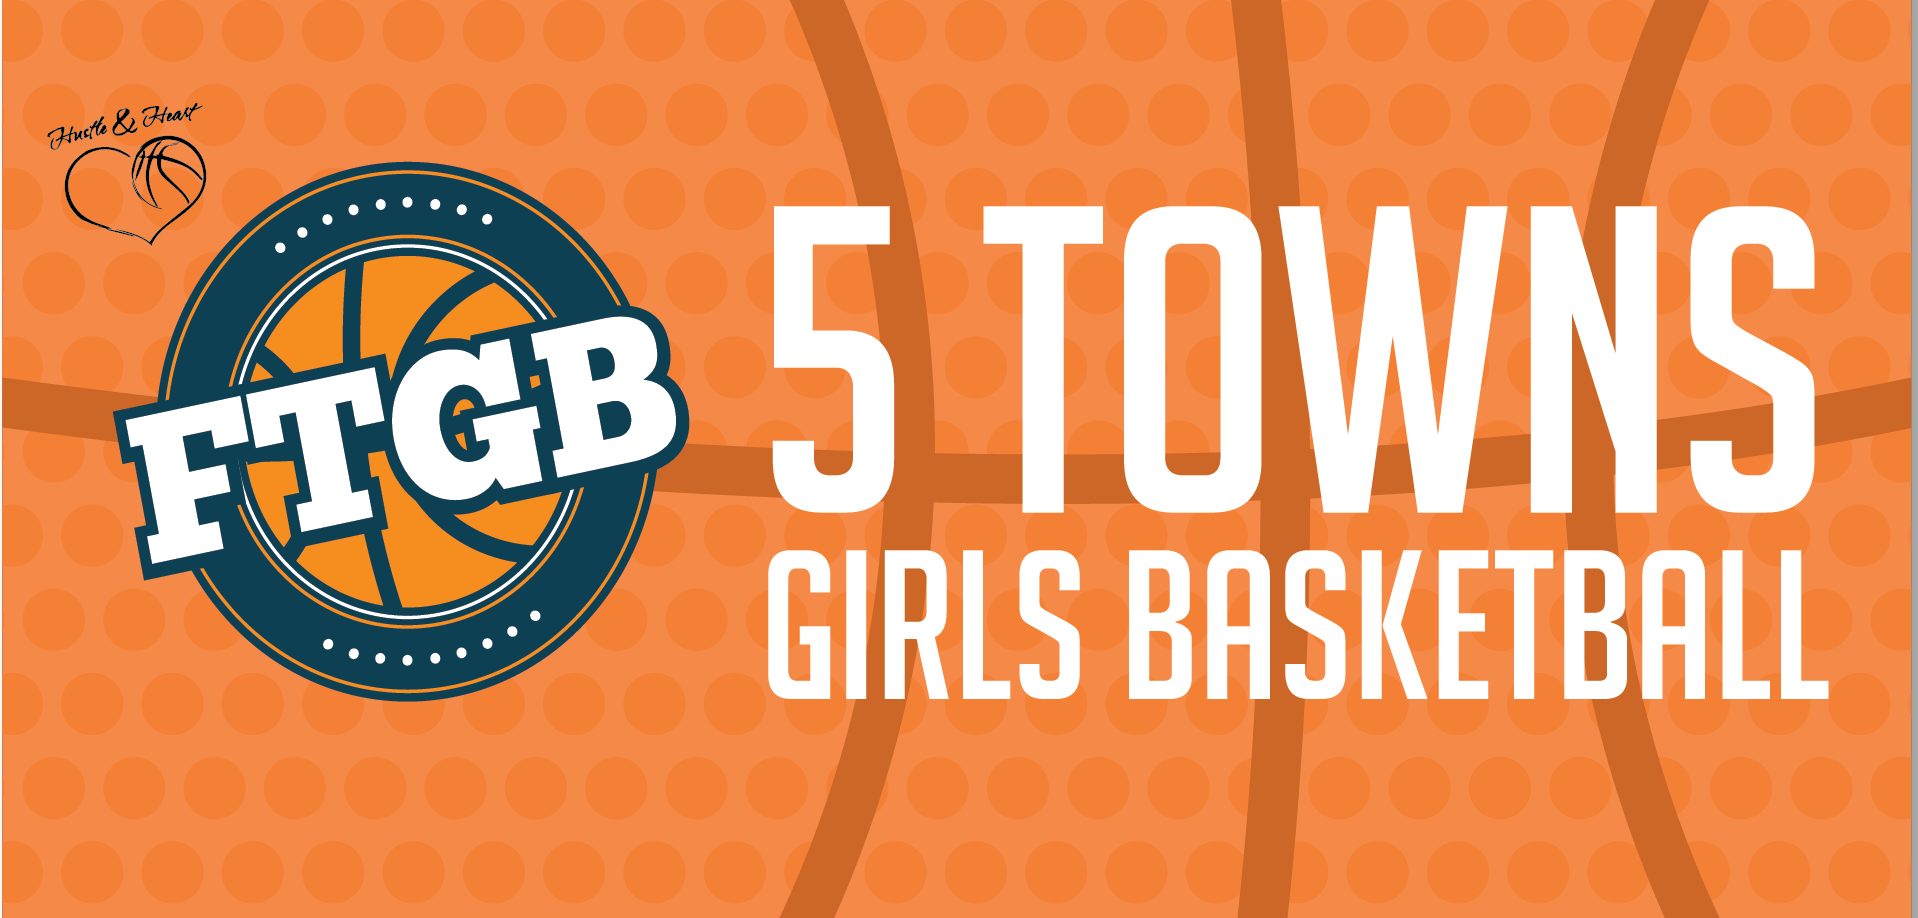 5 Towns Girls Basketball League